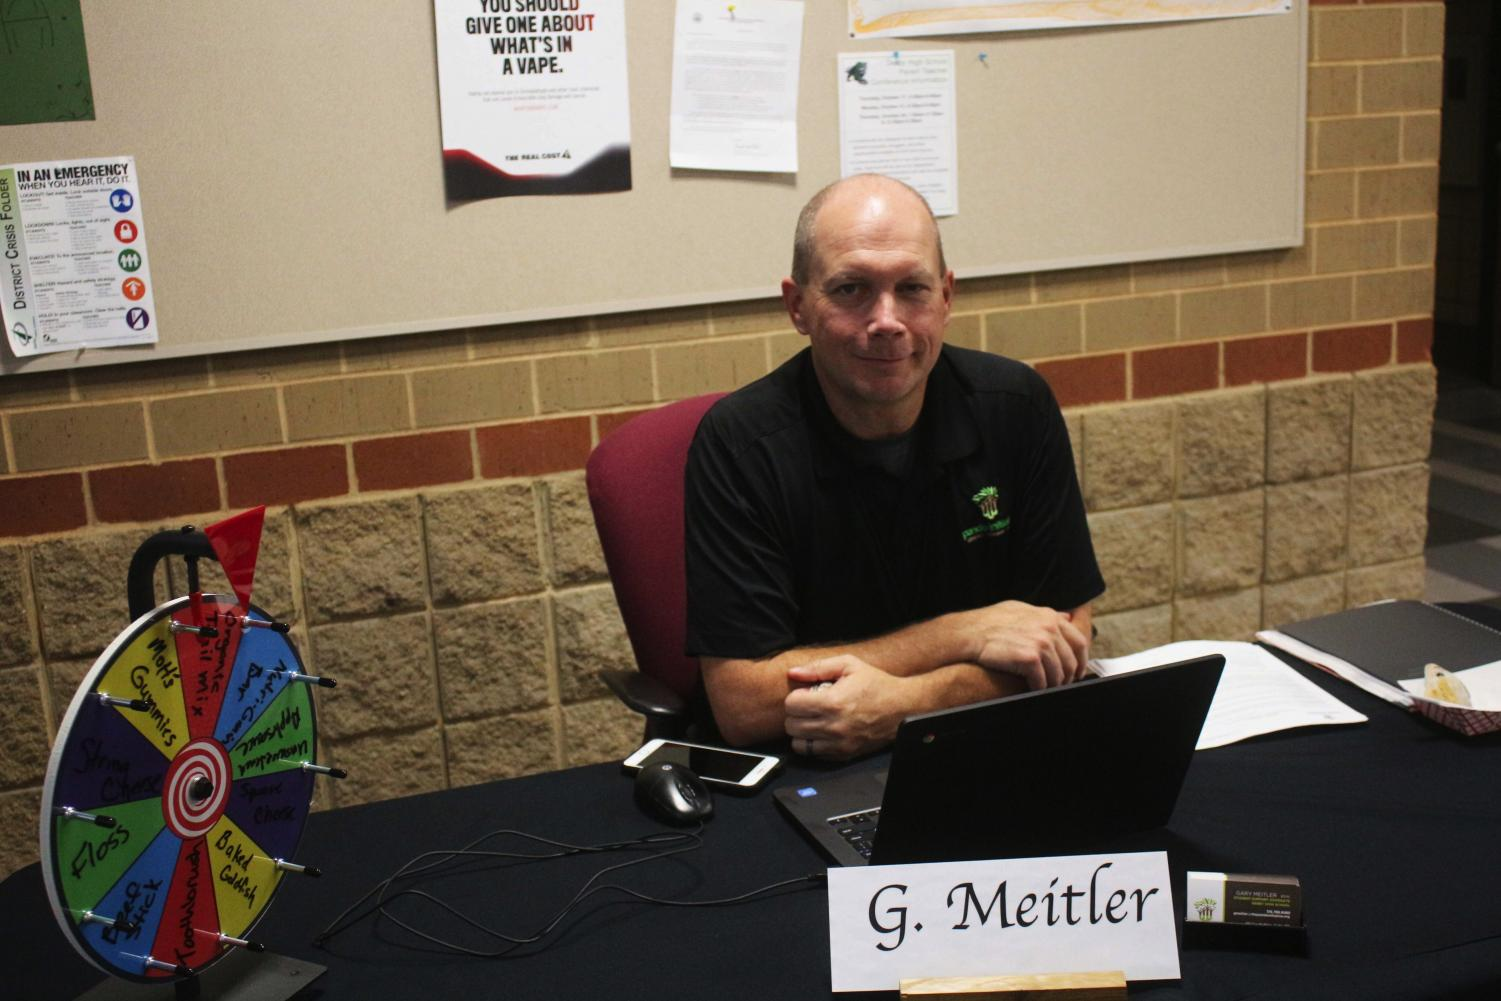 Gary+Meitler+helps+students+in+need+of+school+supplies+at+conferences+Oct.+21